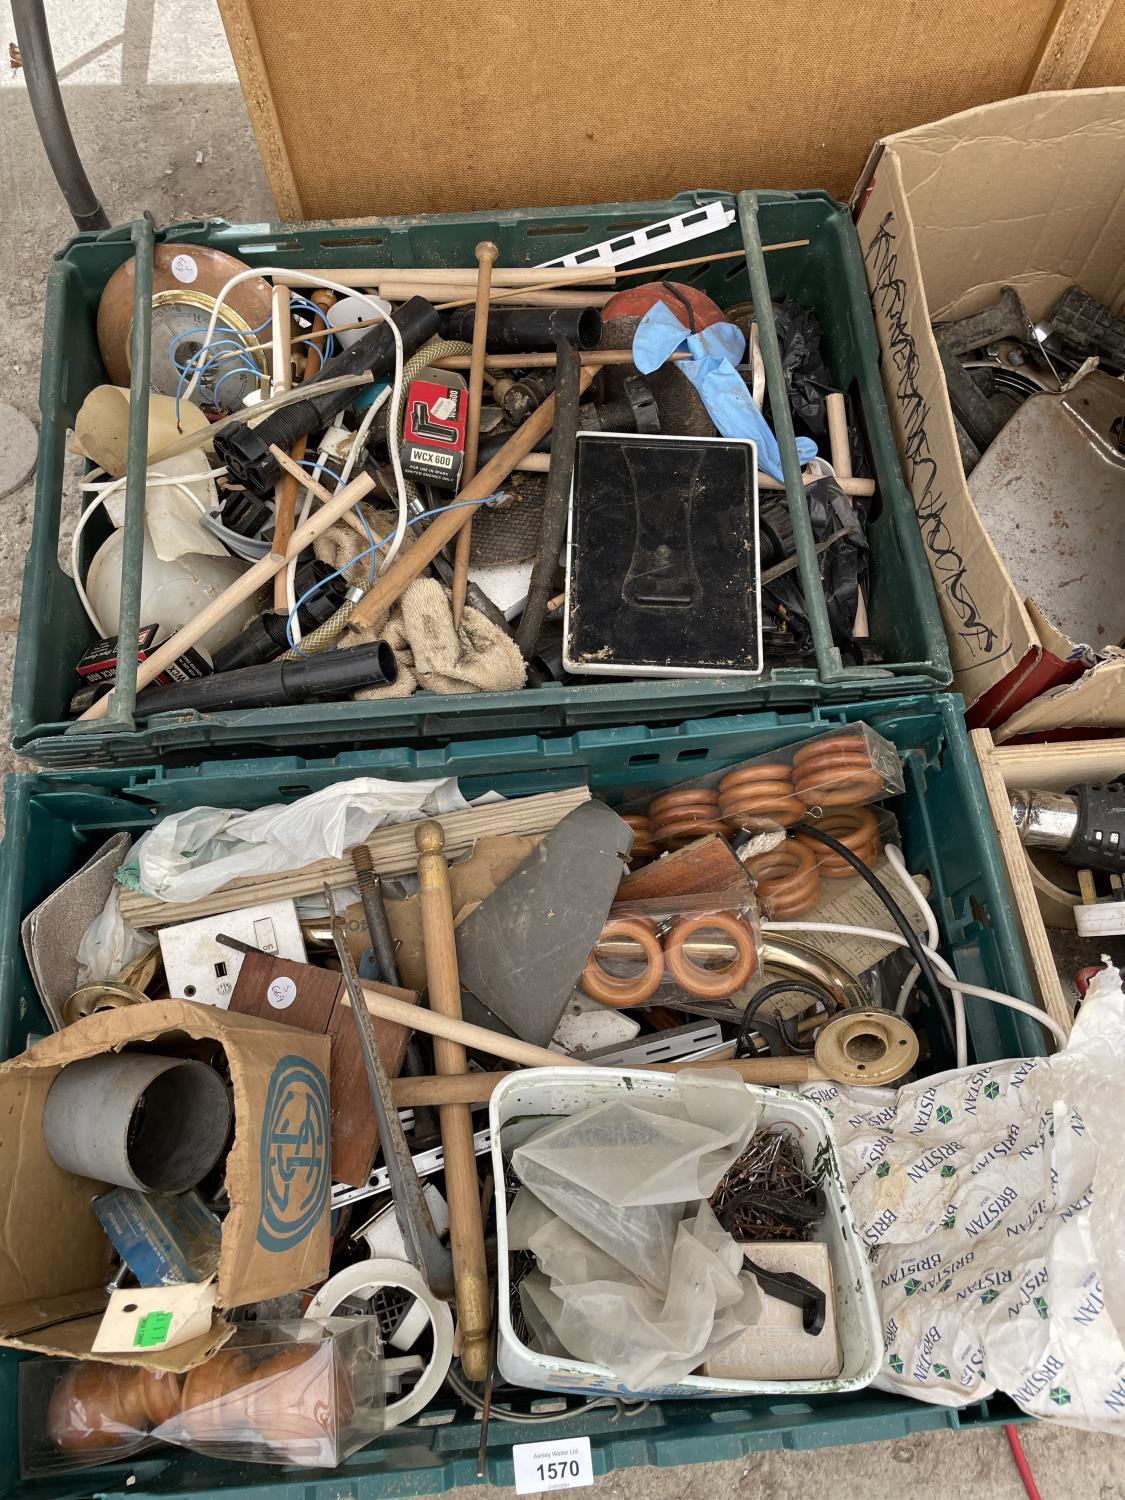 AN ASSORTMENT OF HARDWARE AND TOOLS TO INCLUDE A JIGSAW, HEAT GUN AND NAILS ETC - Image 4 of 6